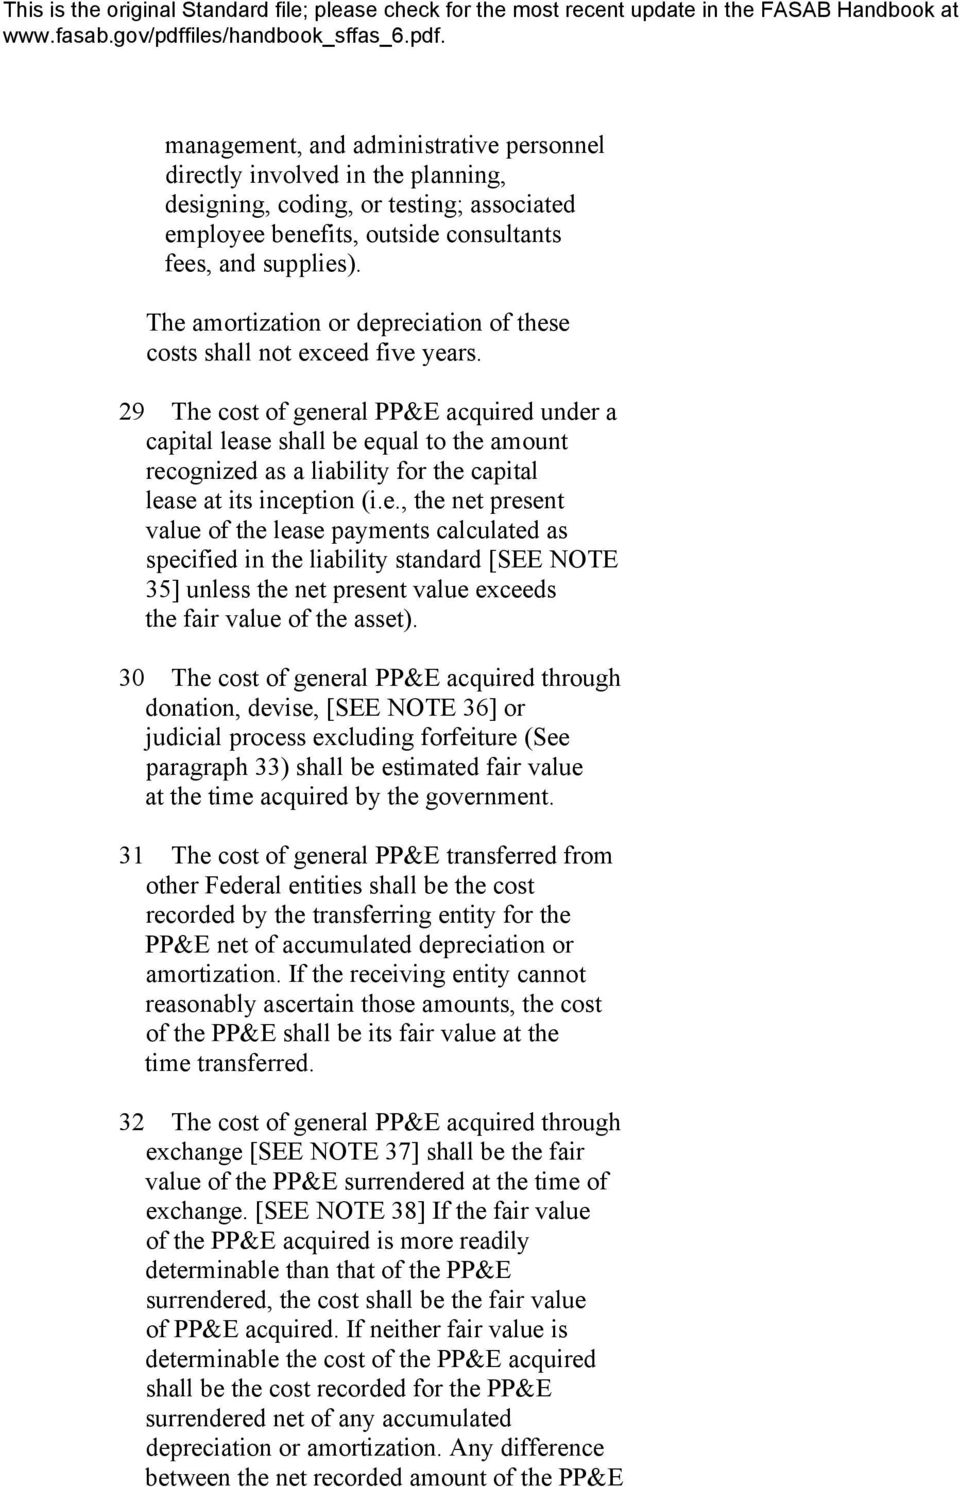 29 The cost of general PP&E acquired under a capital lease shall be equal to the amount recognized as a liability for the capital lease at its inception (i.e., the net present value of the lease payments calculated as specified in the liability standard [SEE 35] unless the net present value exceeds the fair value of the asset).